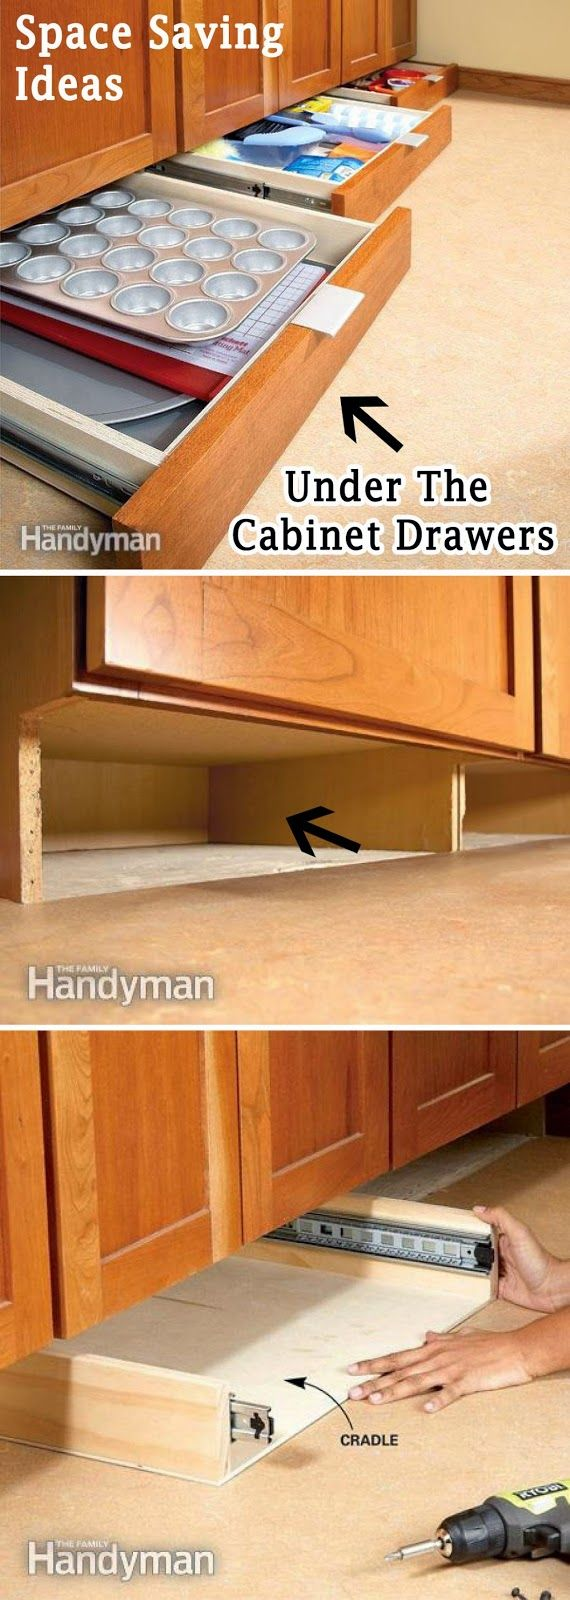 11 Creative and Clever Space Saving Ideas 3 … | space sa…